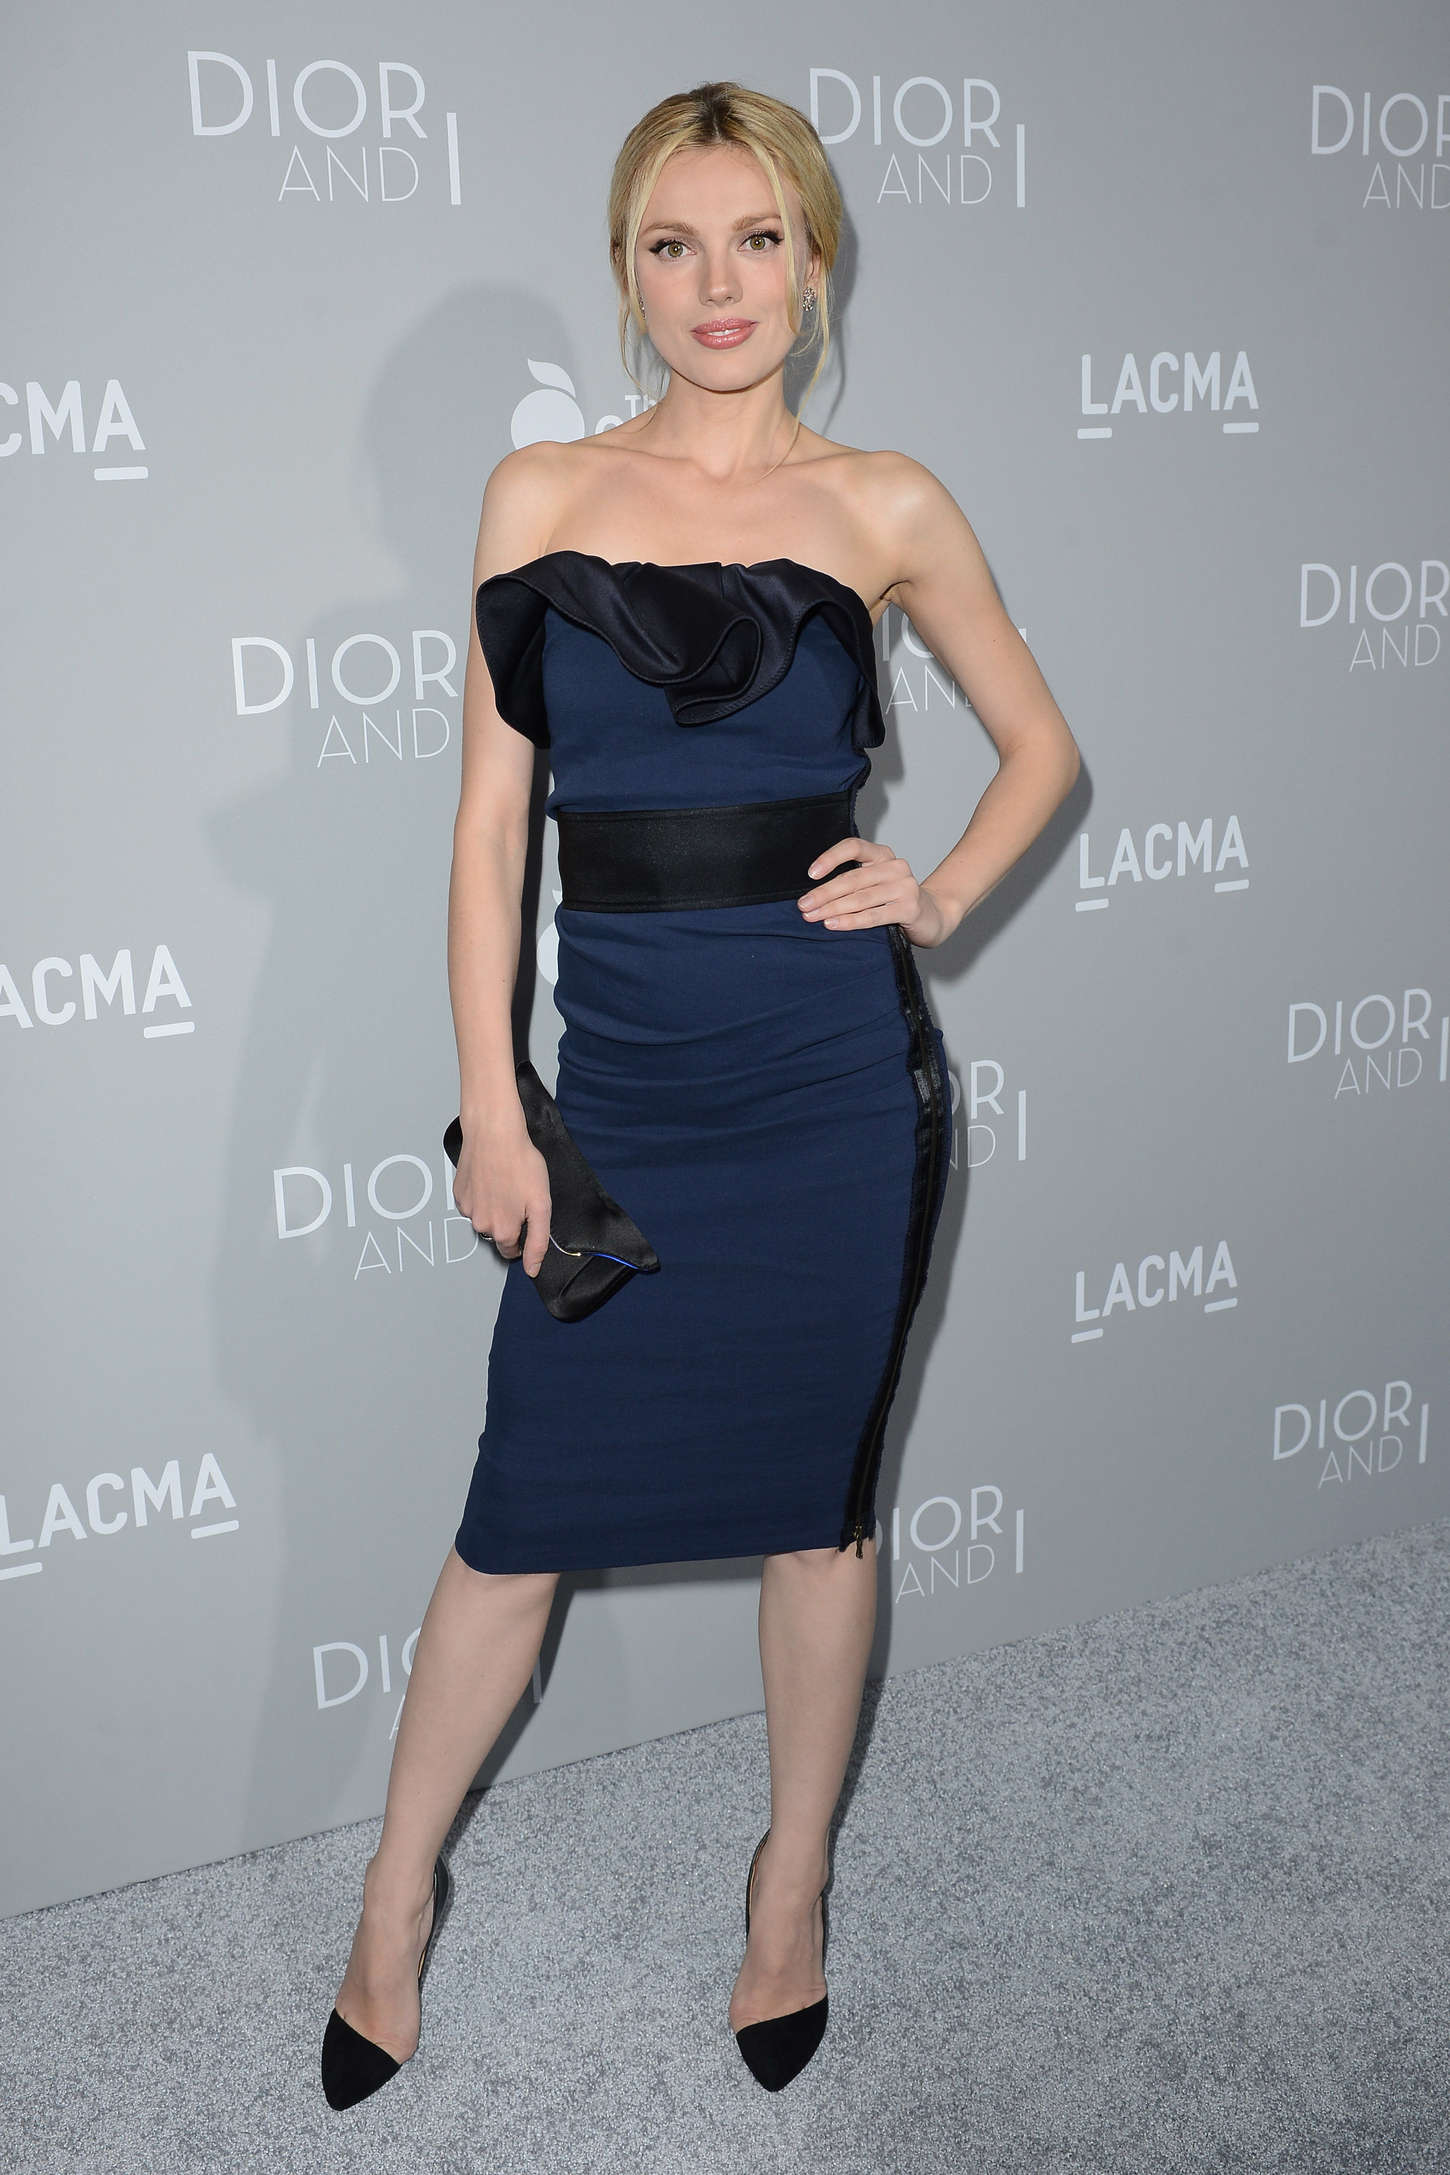 Bar Paly Orchard Premiere of Dior and I in Los Angeles